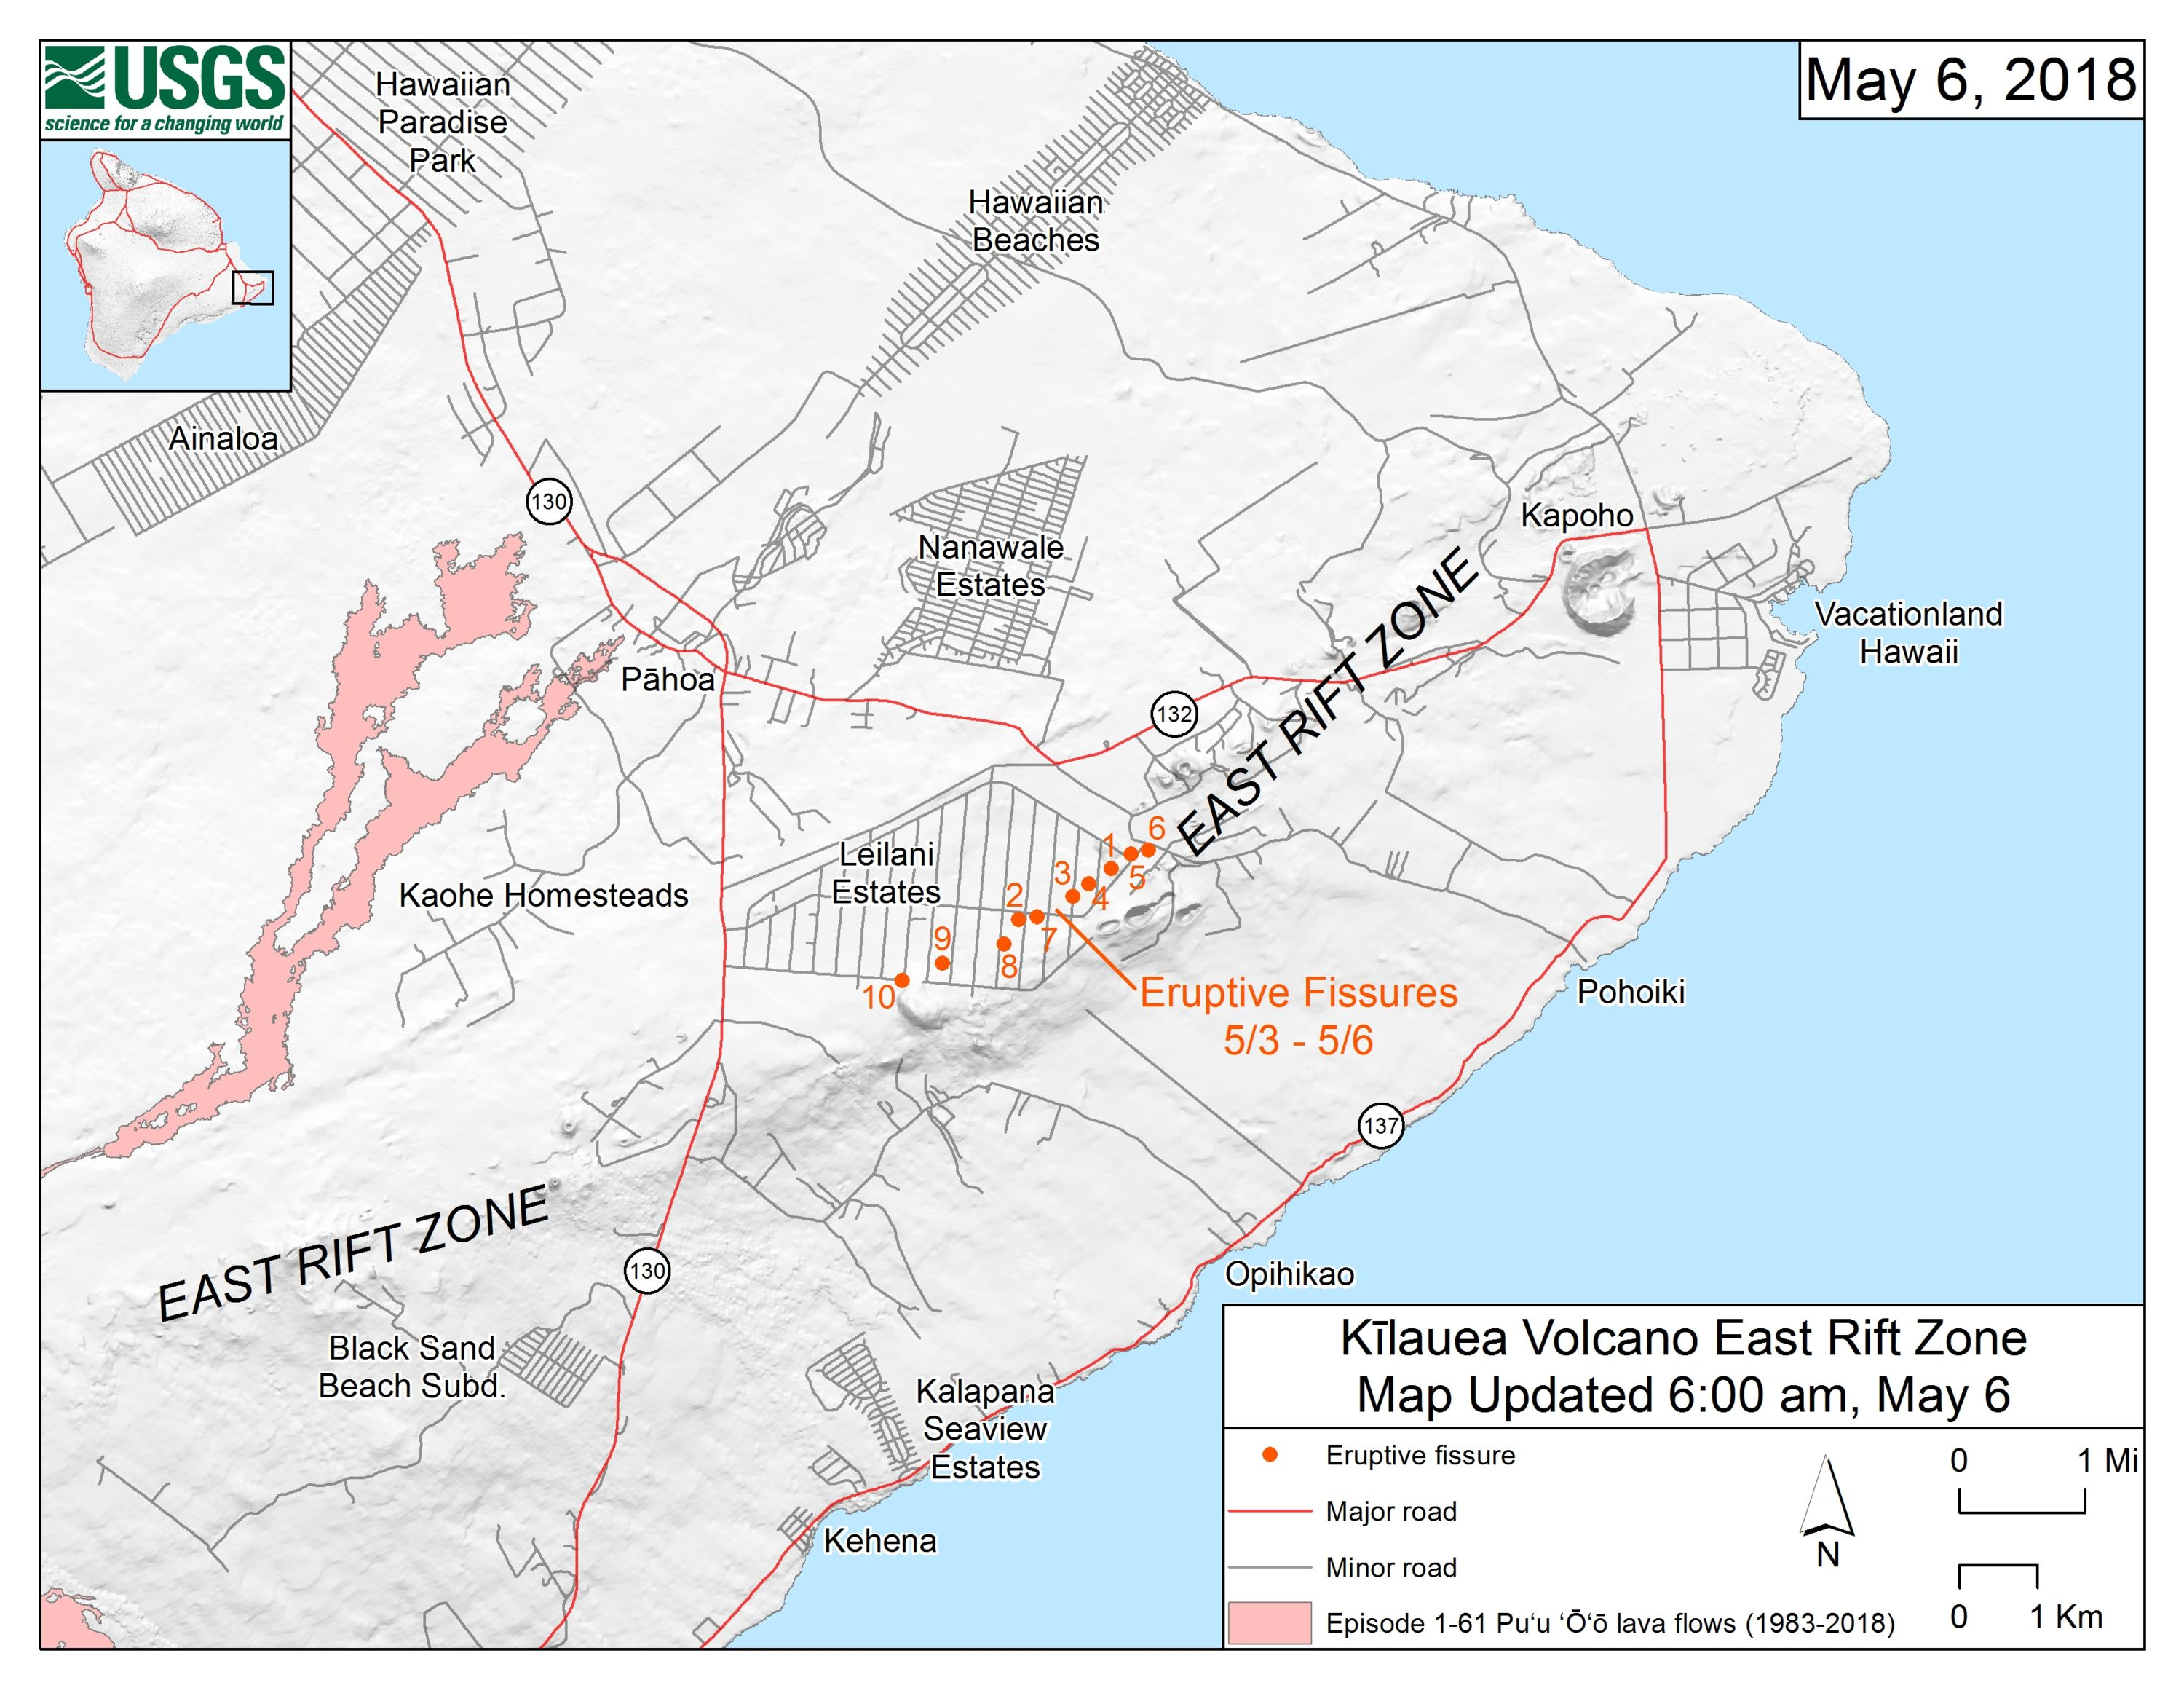 How Kilauea's Lava Invades Neighborhoods - Scientific American on kauai map us, pearl harbor map us, united states map us, honolulu map us, los angeles map us, volcano map us, san diego map us, anchorage map us, san francisco map us, washington map us, philadelphia map us, chicago map us, california map us, cleveland map us,